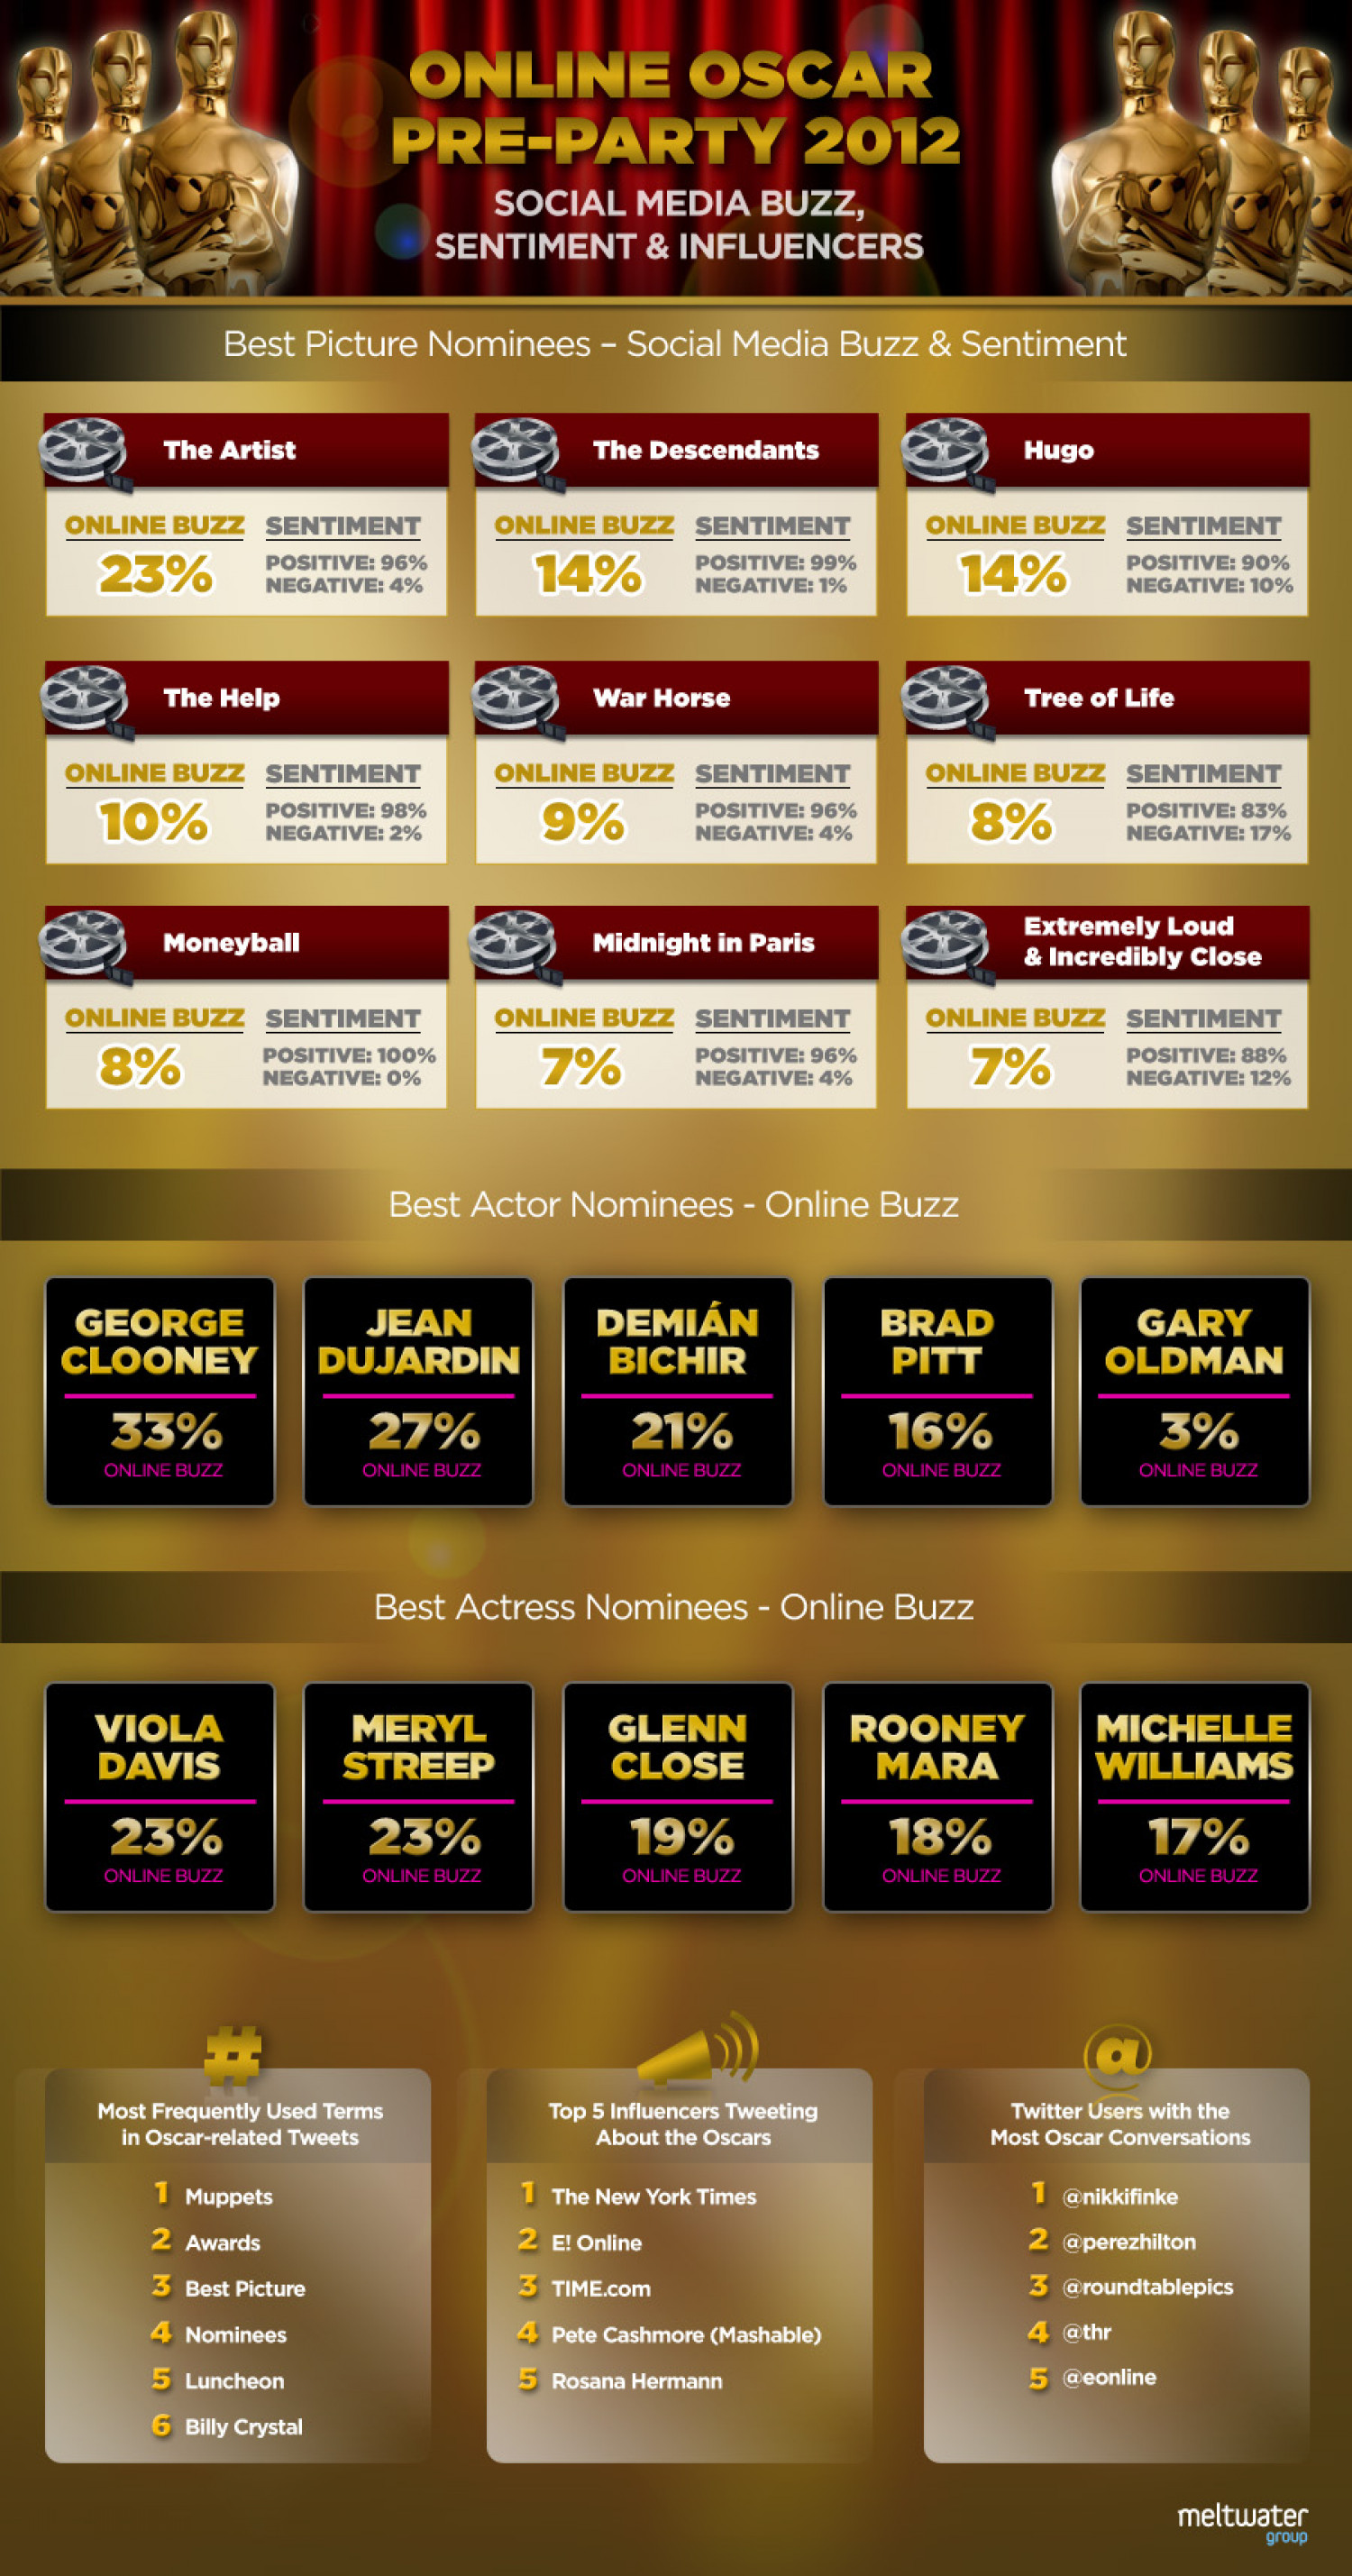 Oscar Nominees and Social Media Buzz Infographic